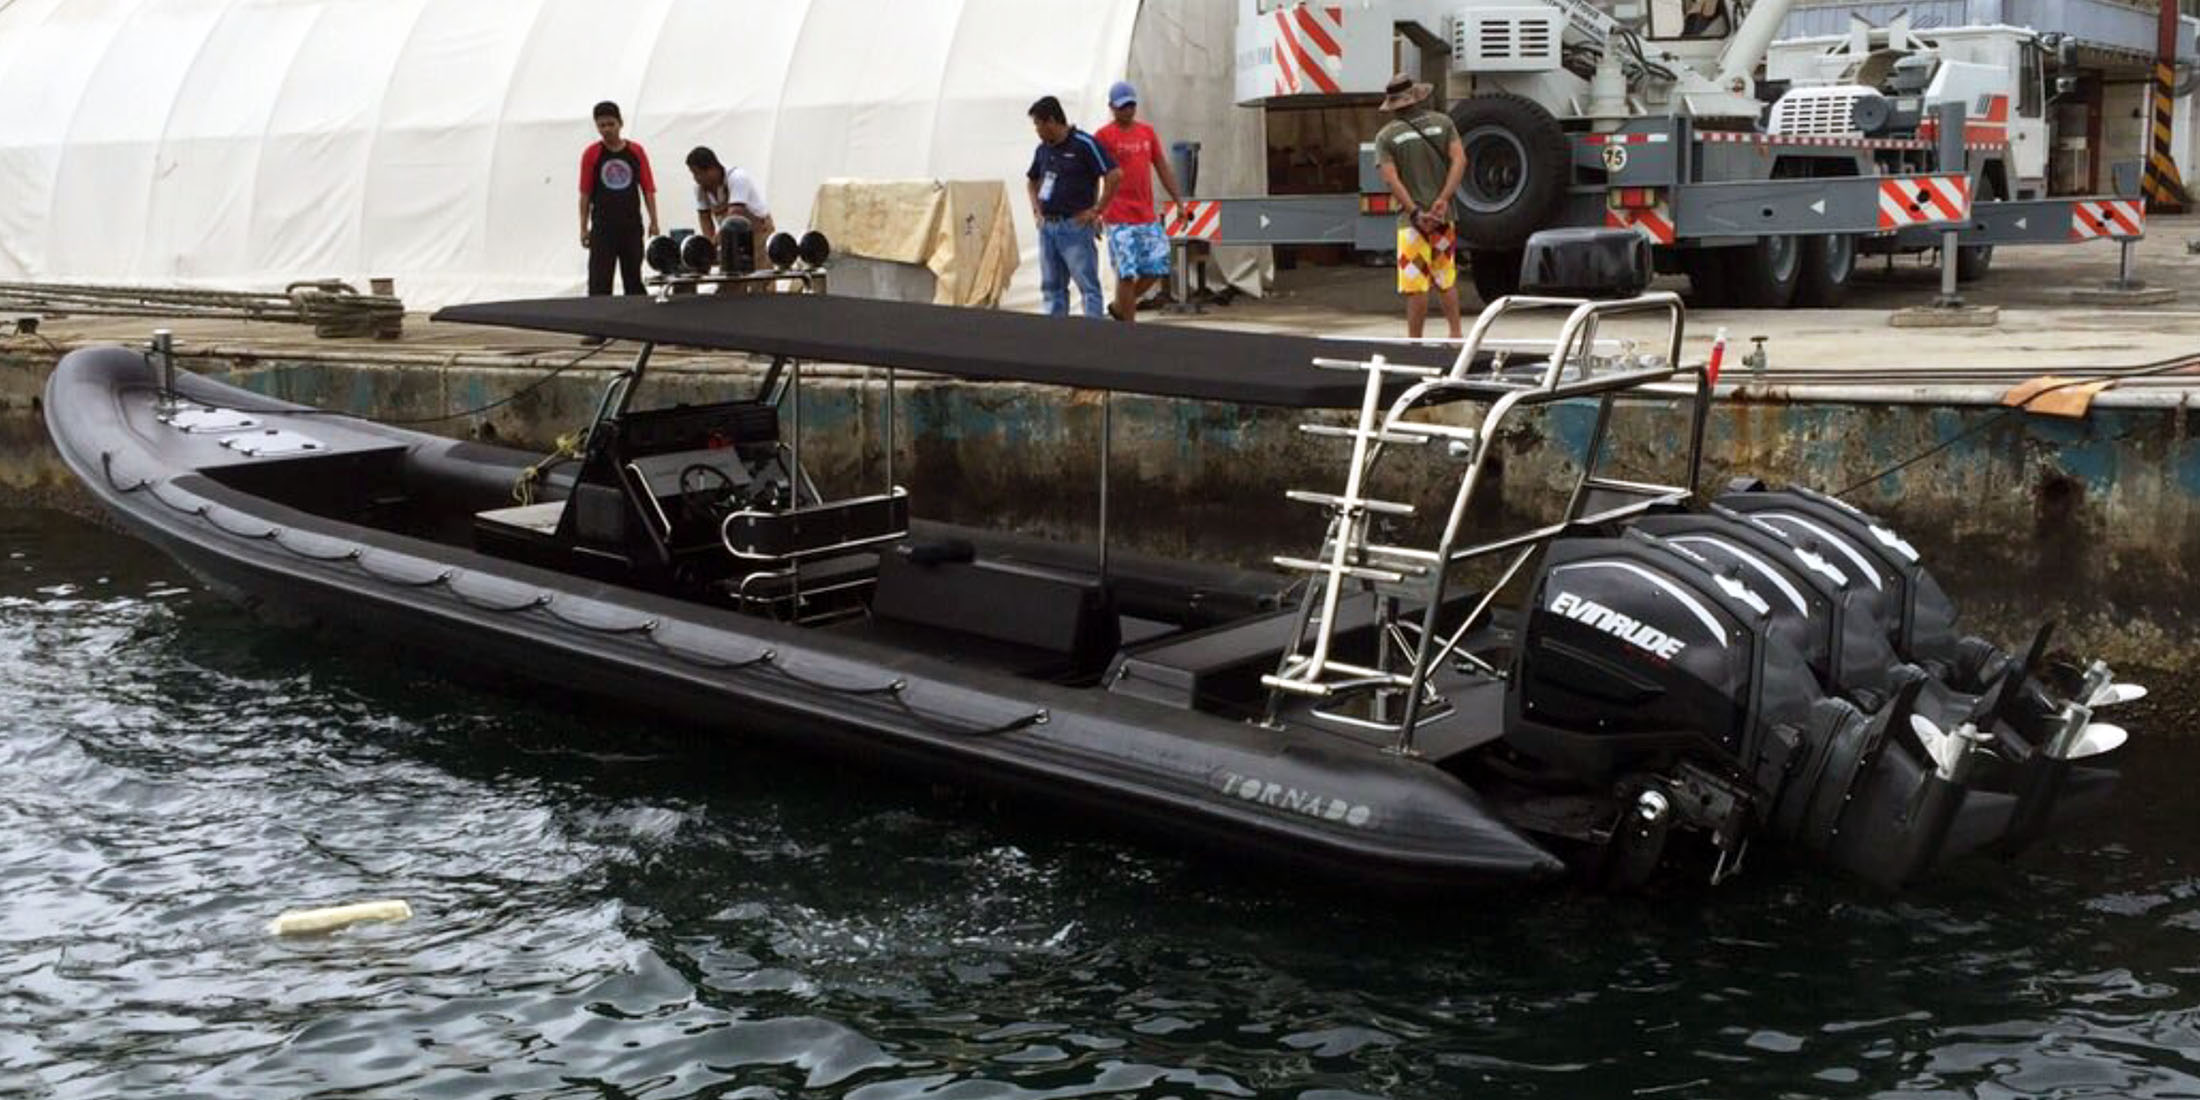 Rescue, offshore, military and police boats. Tornado 12.5m high performance RIB